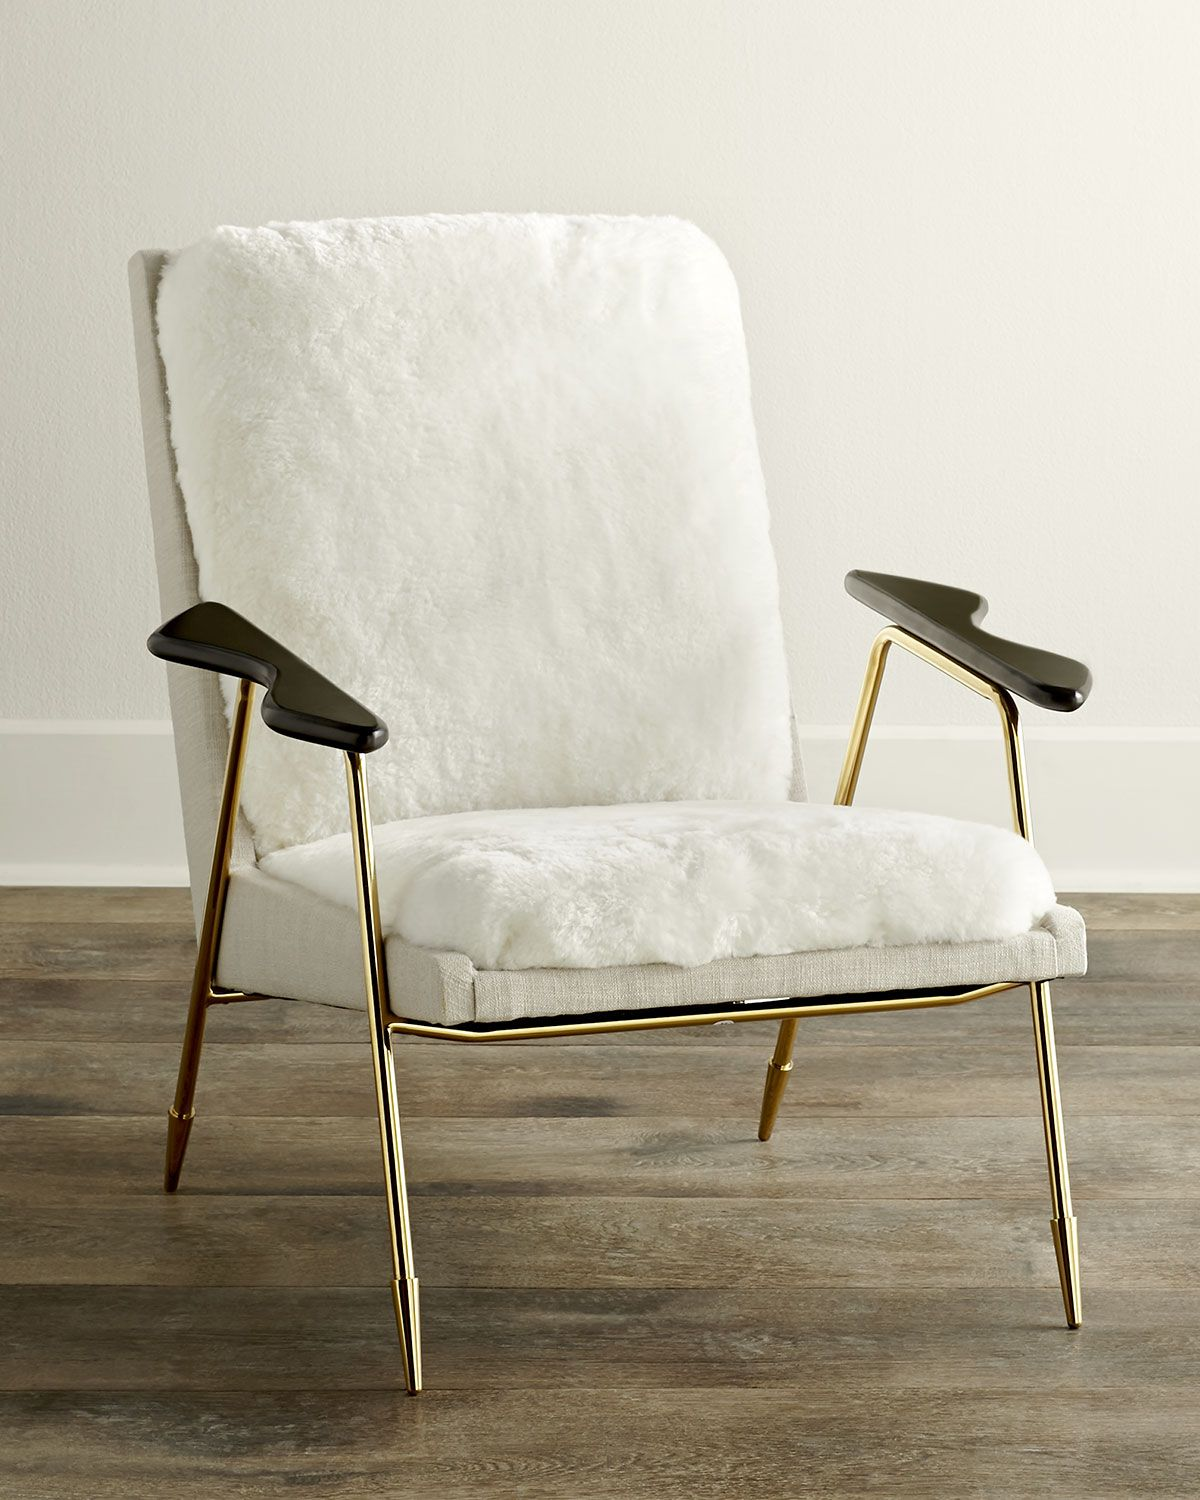 Attractive Jonathan Adler Ingmar Chair